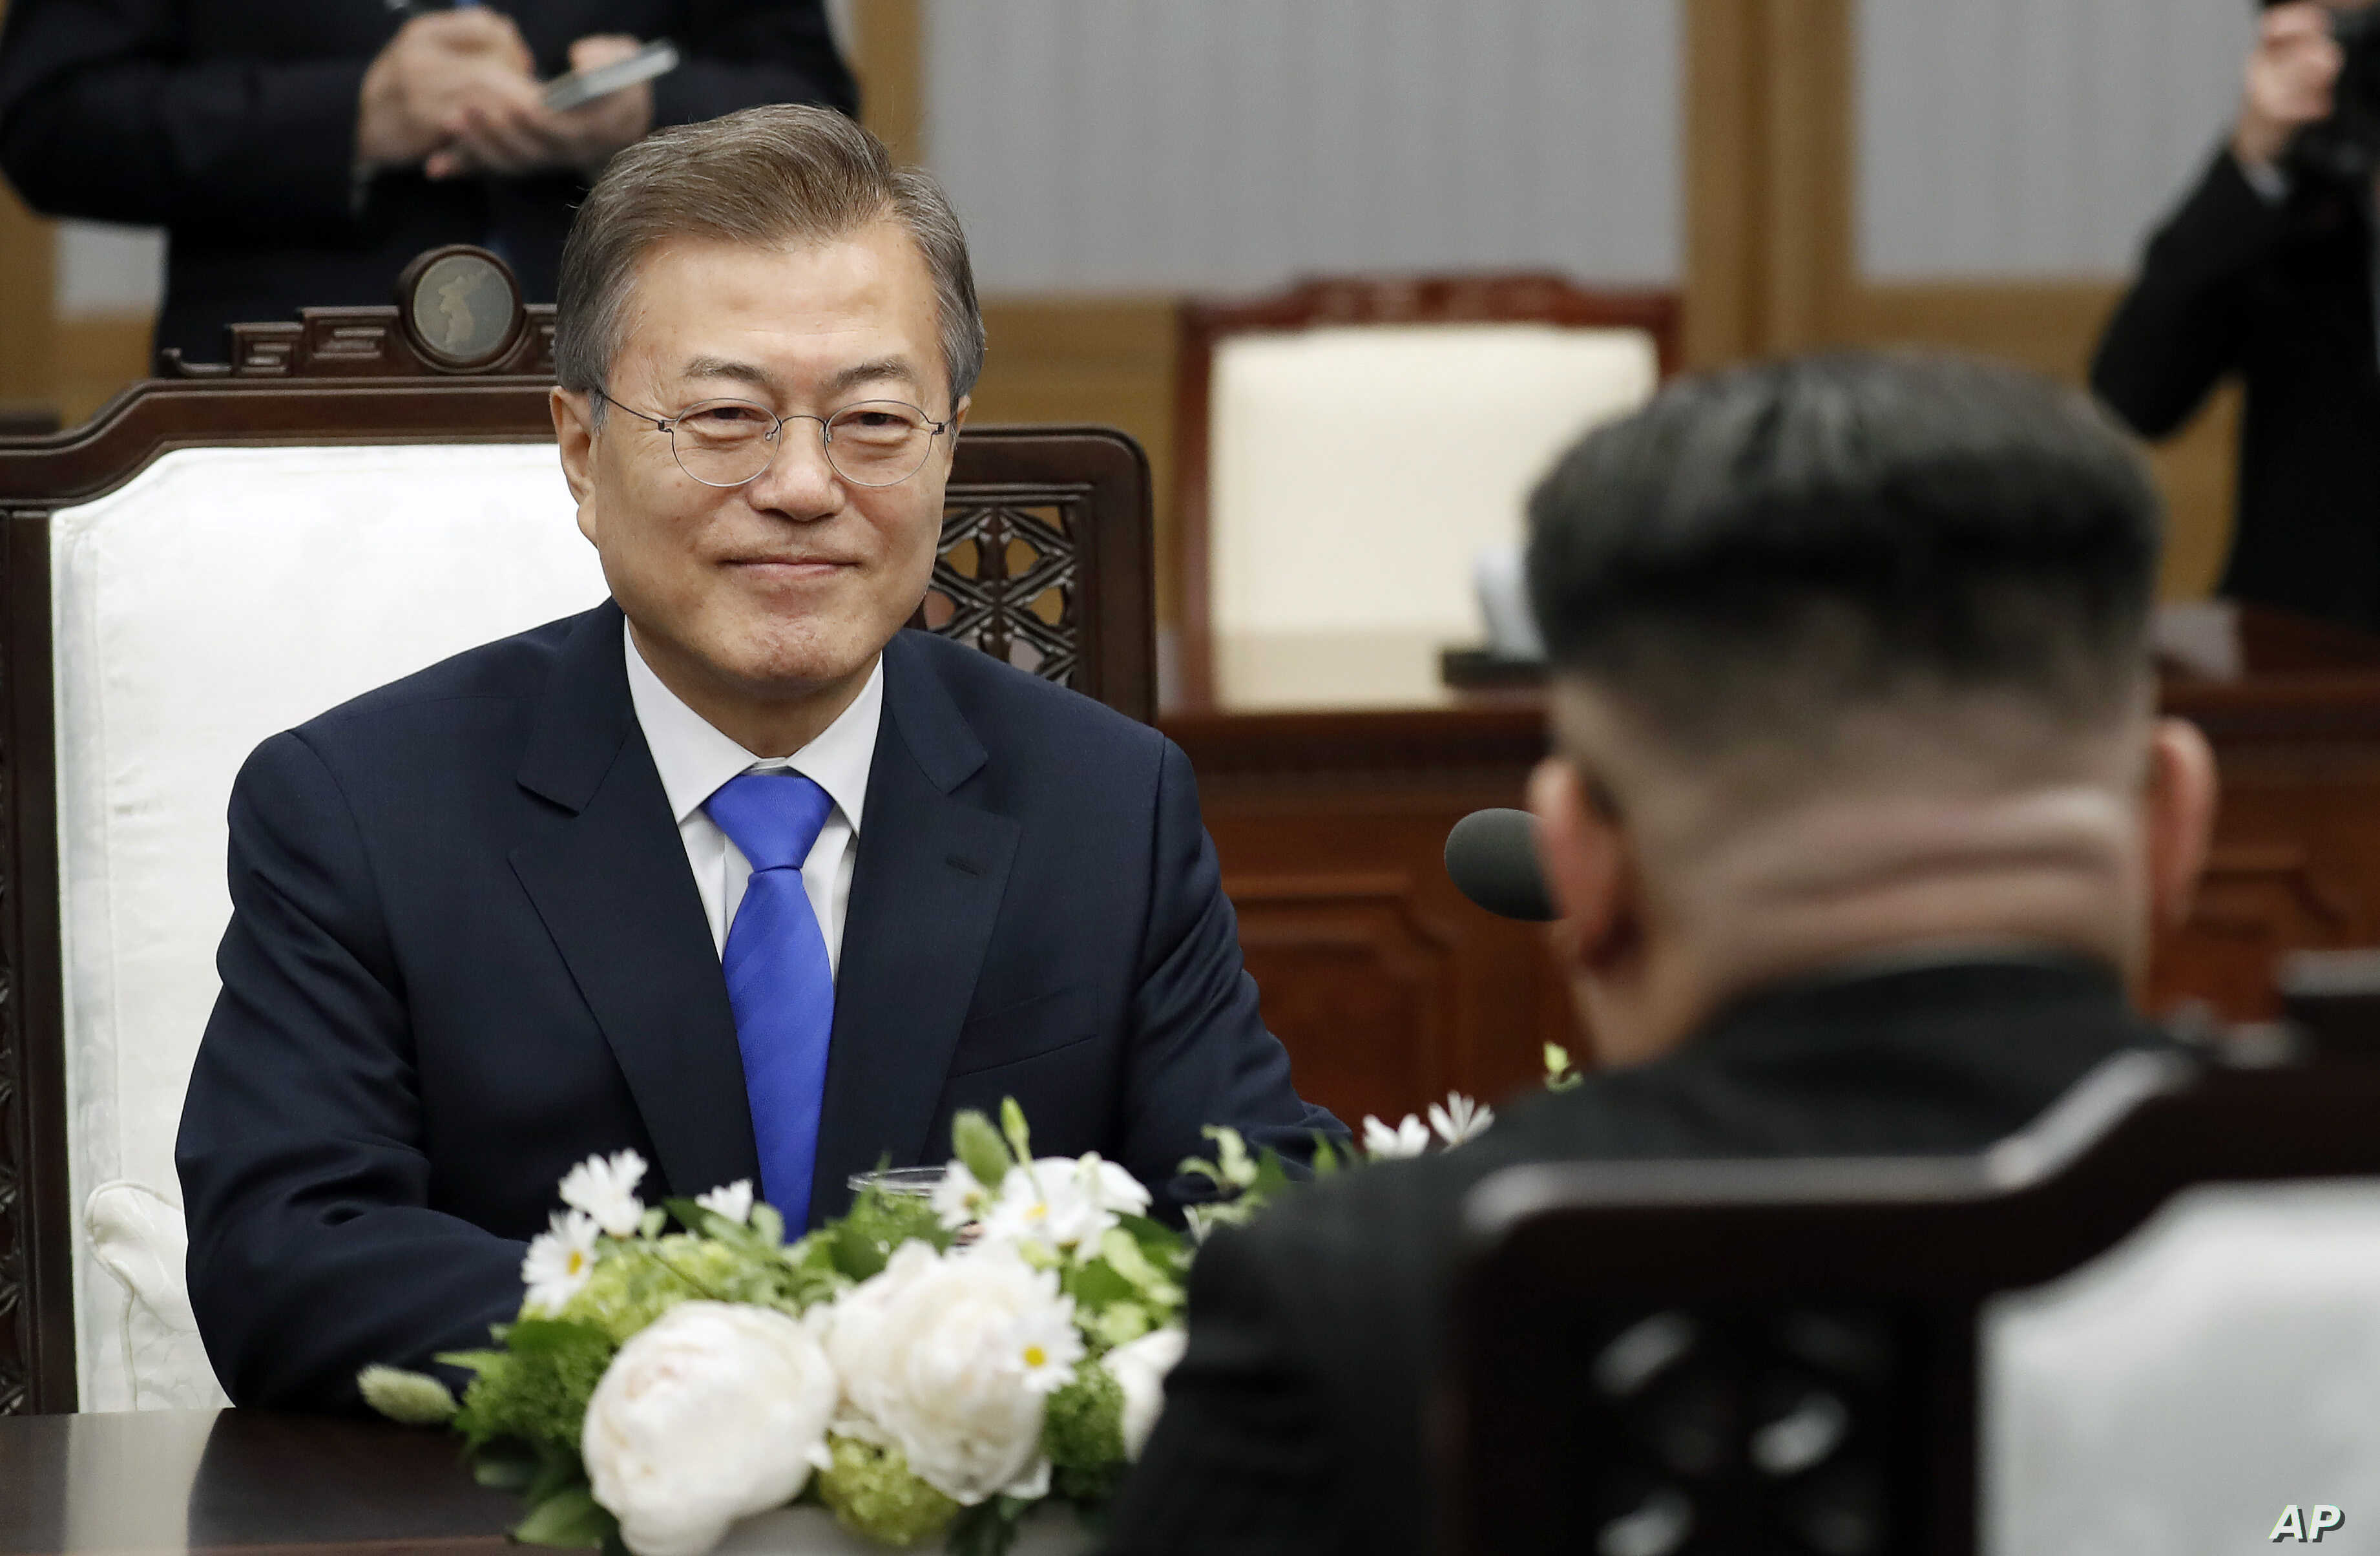 South Korean President Moon Jae-in meets with North Korean leader Kim Jong Un at Peace House of the Panmunjom in the Demilitarized Zone, South Korea, April 27, 2018.